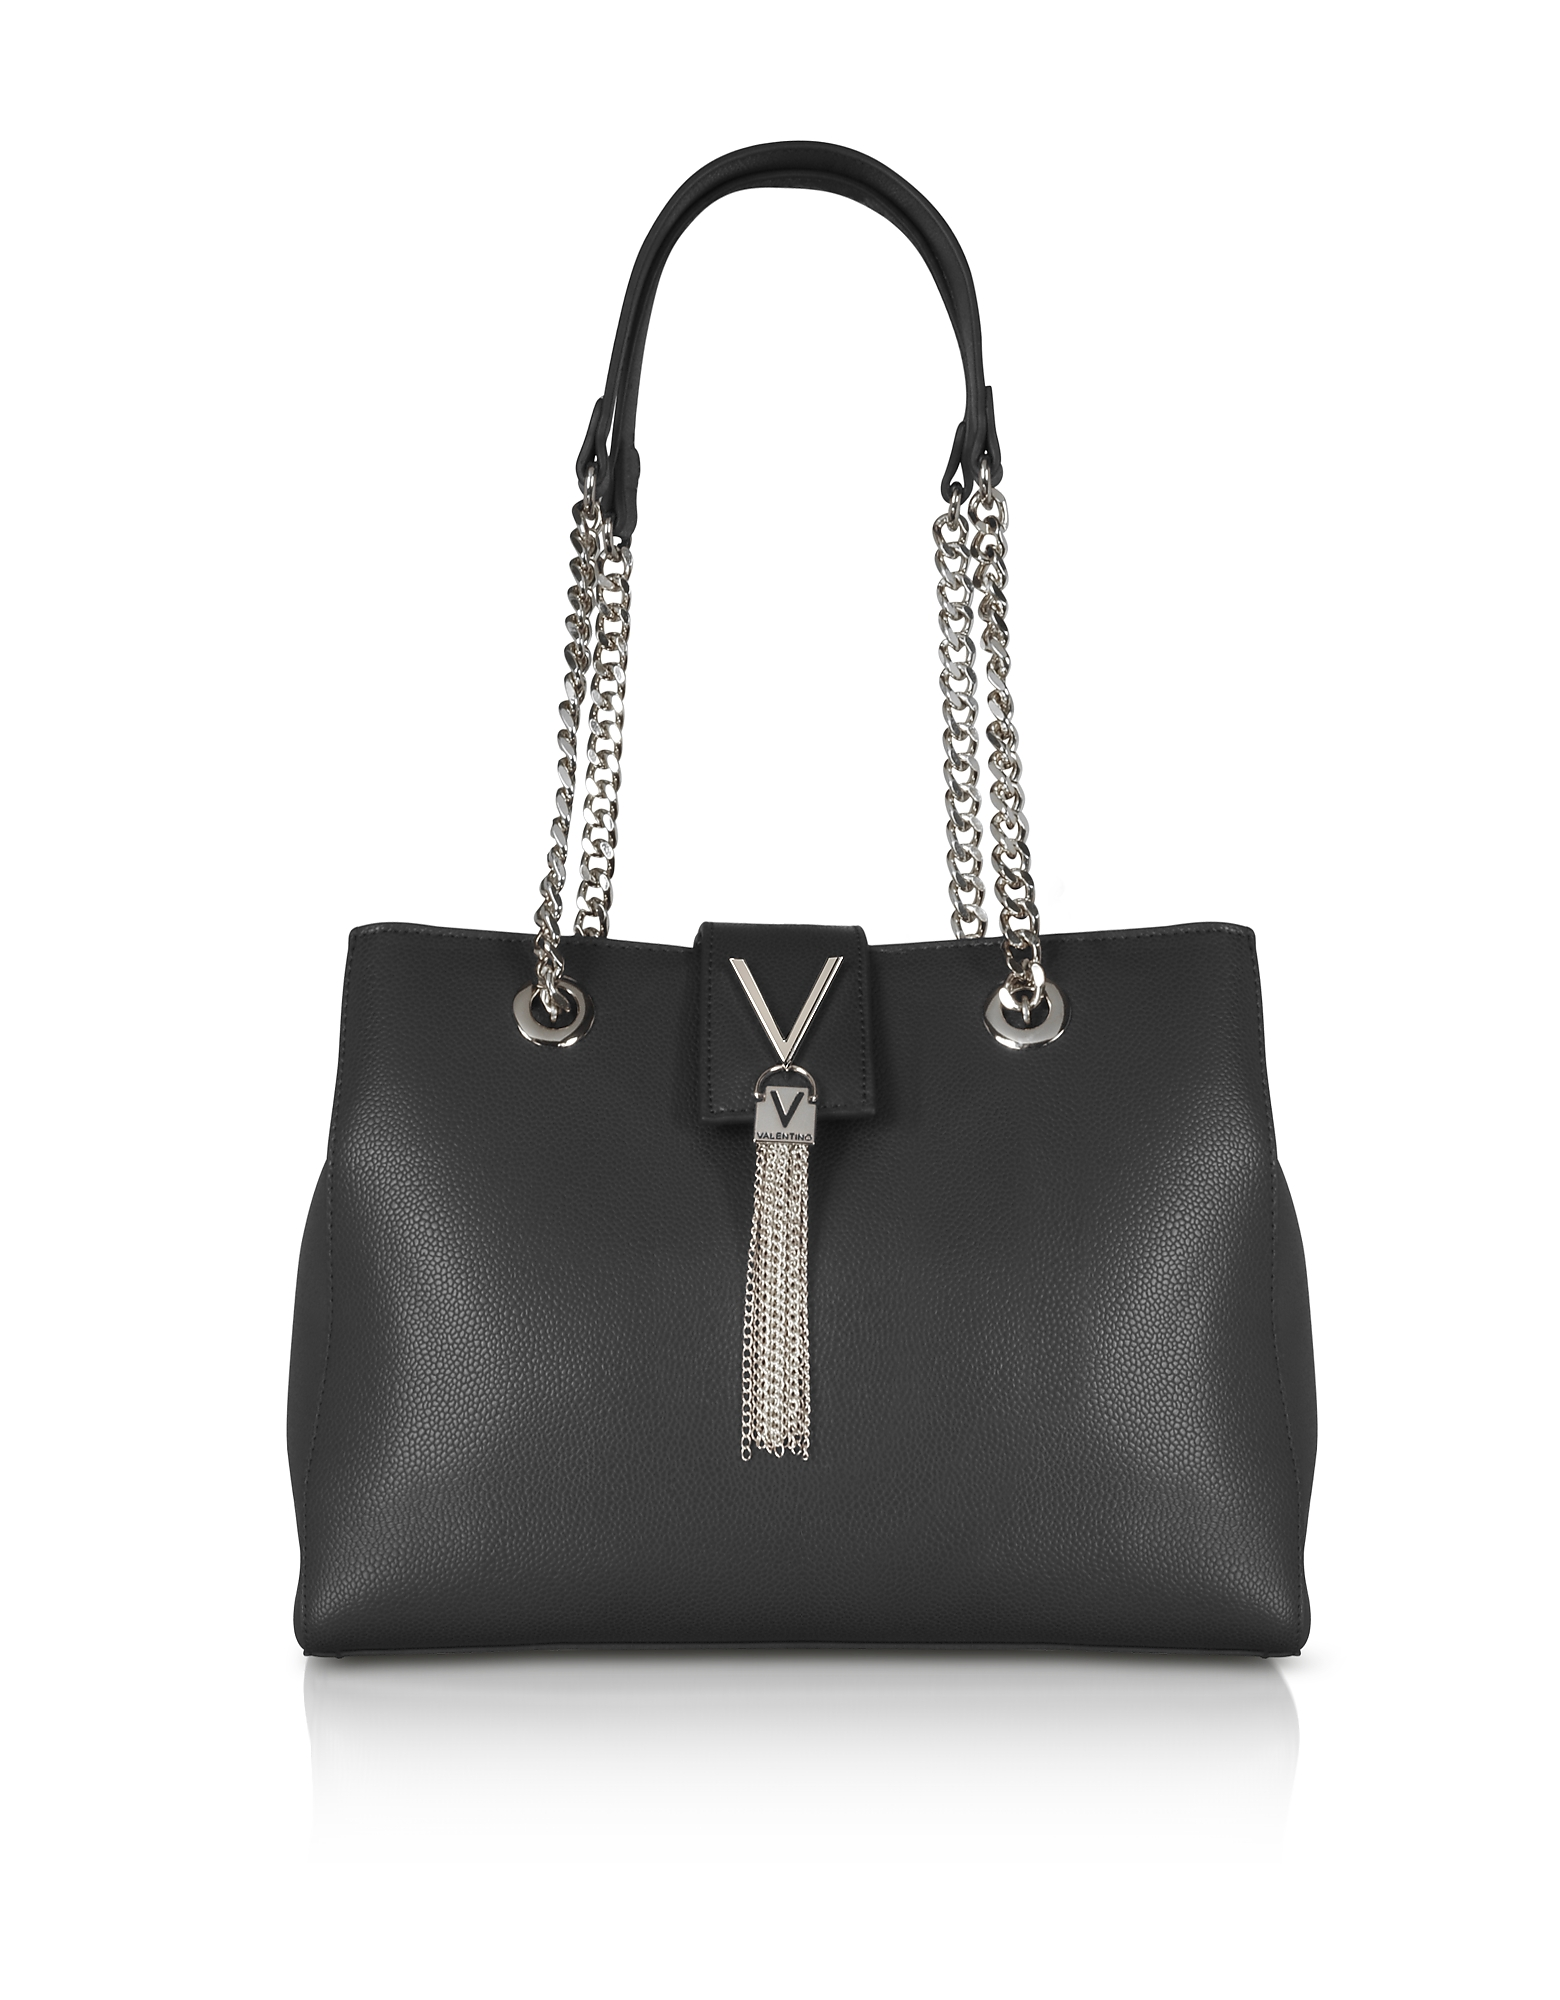 Image of Valentino by Mario Valentino Designer Handbags, Lizard Embossed Eco Leather Divina Shoulder Bag w/Chain Straps